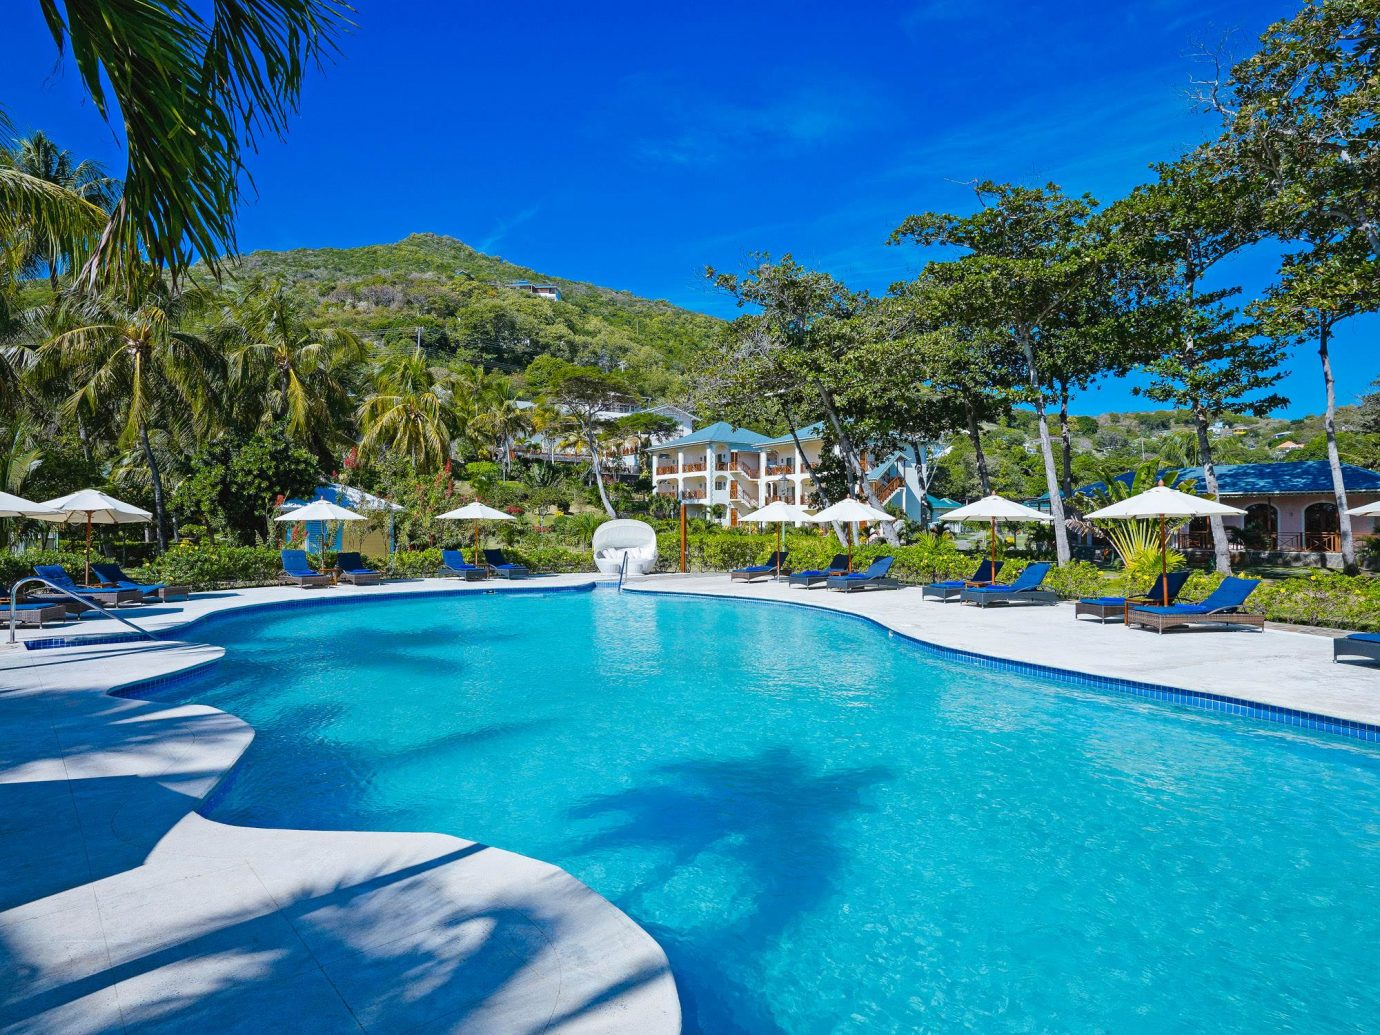 Main pool at Bequia Beach Hotel